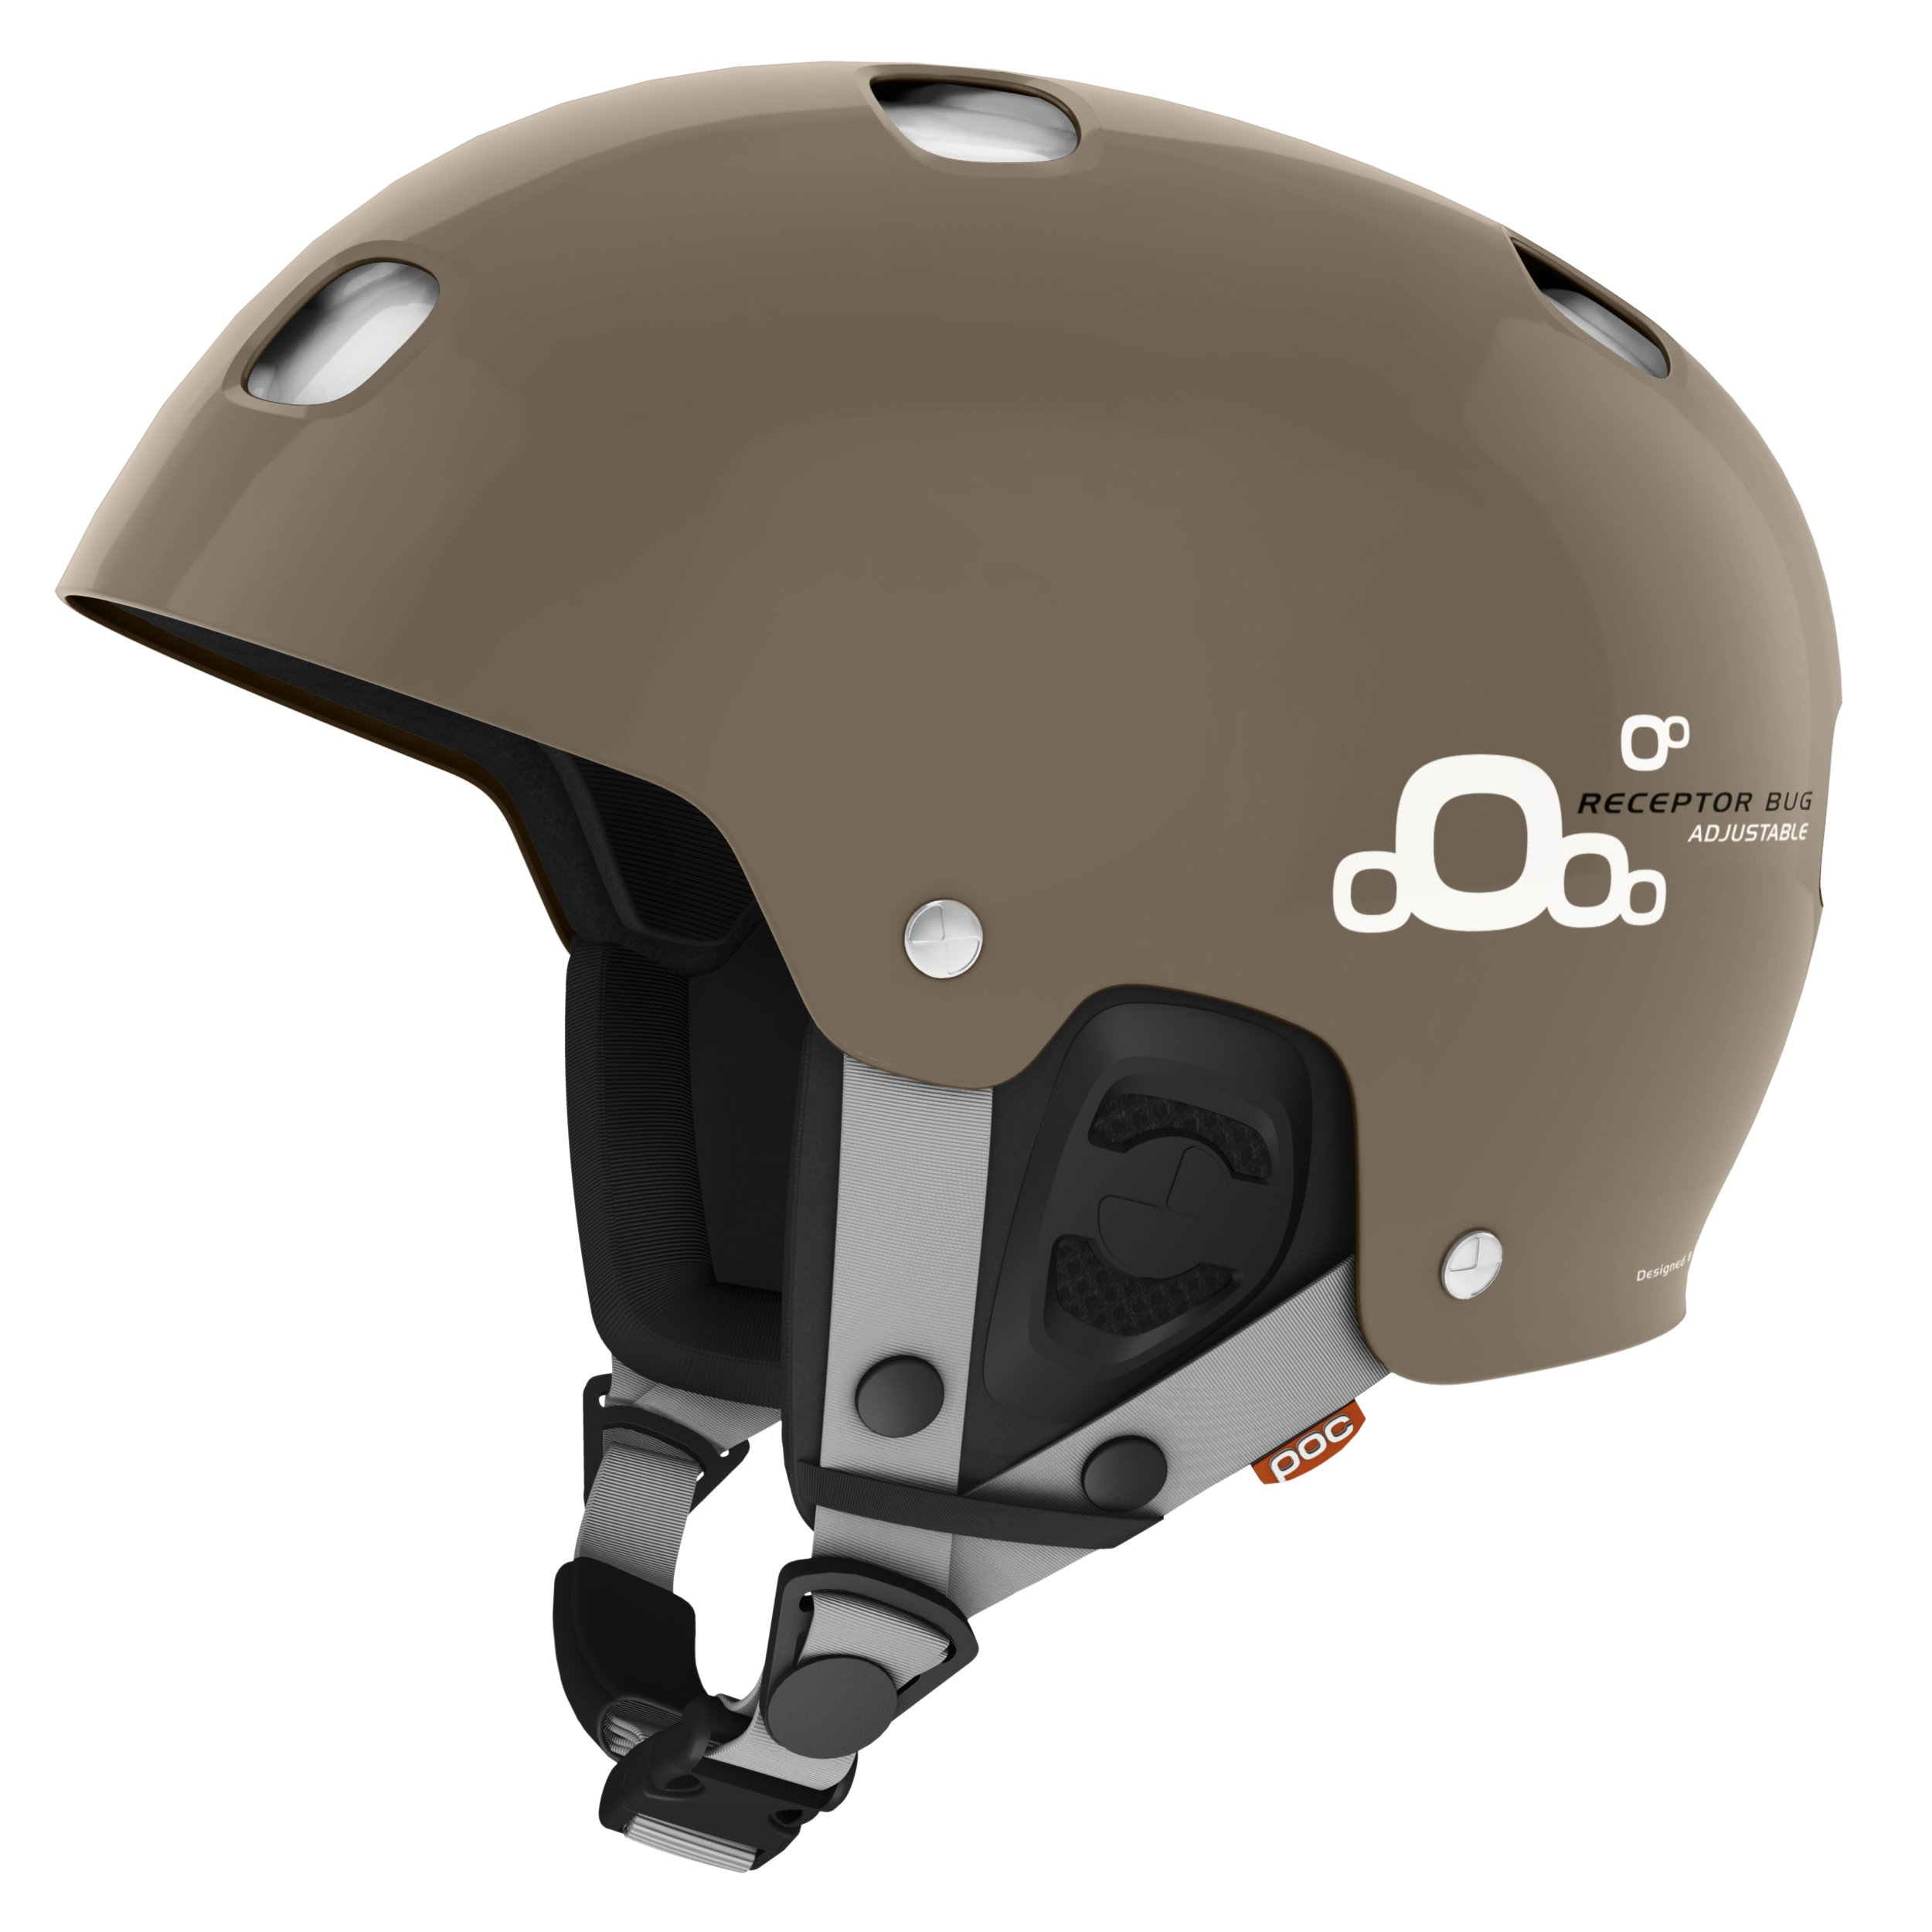 POC Receptor BUG Adjustable 2.0 Snow Helmet - Calcite Beige X-Large/XX-Large by POC